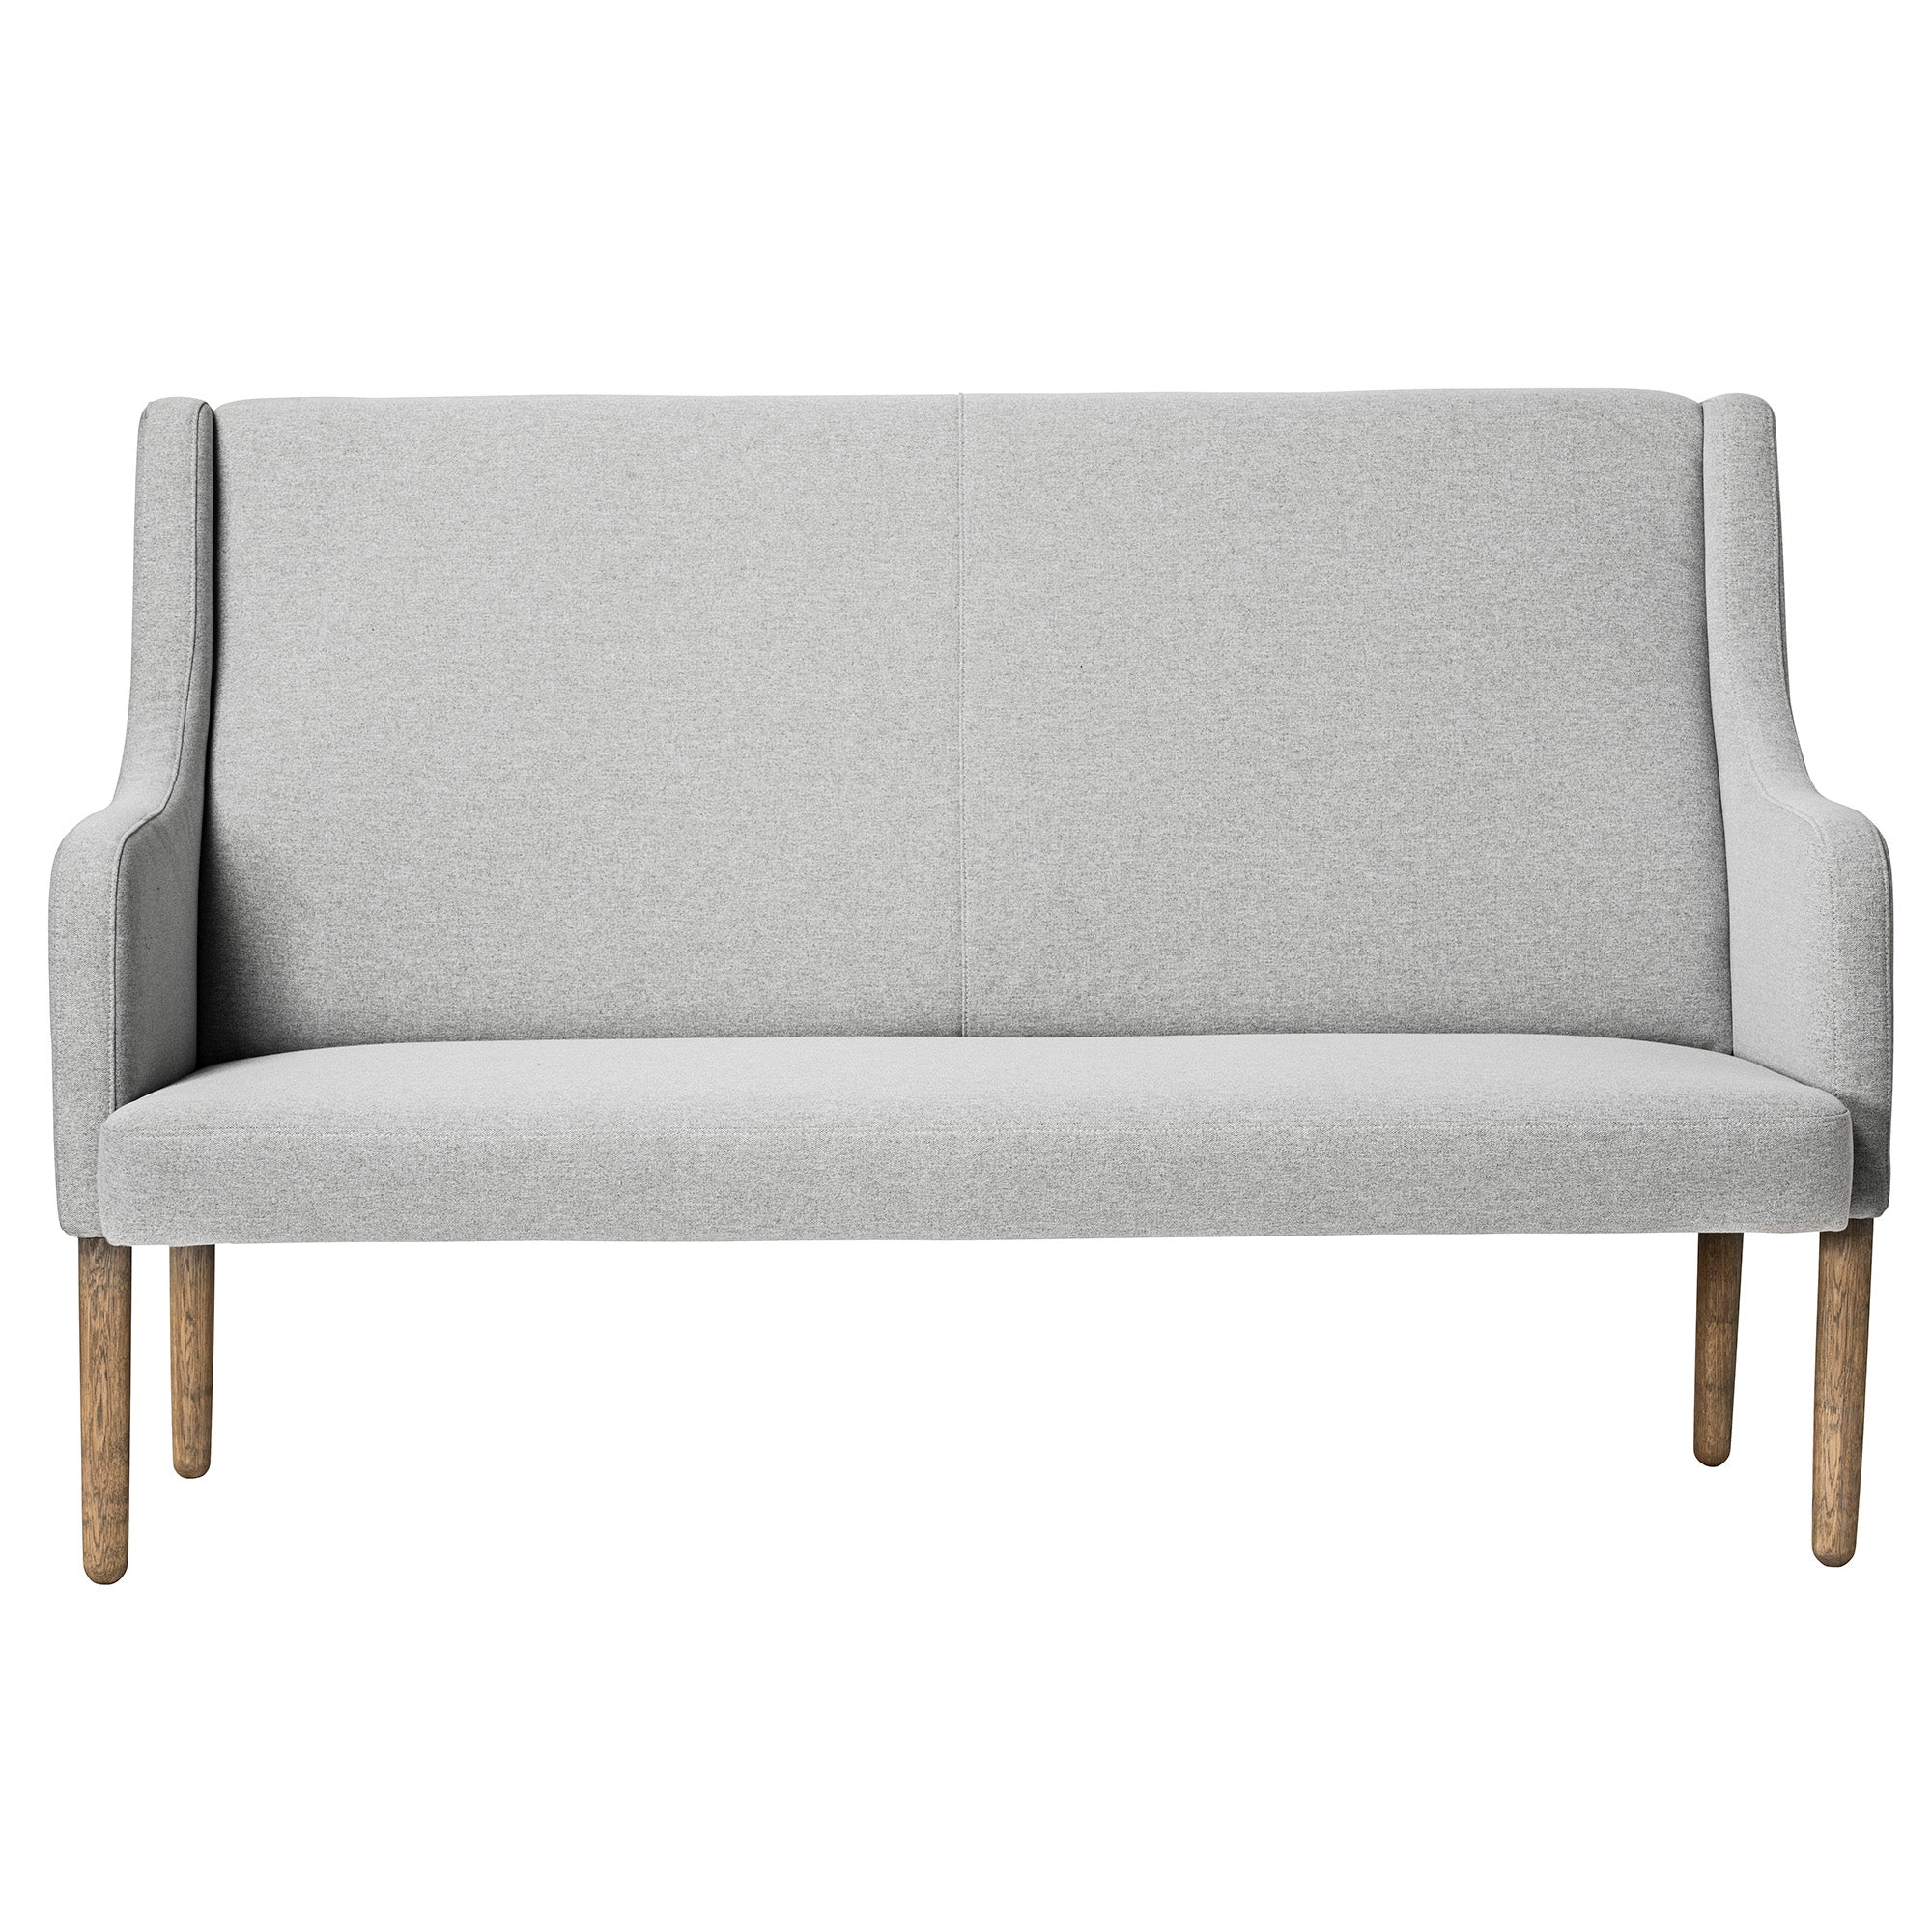 Bloomingville Rest Sofa, Grå, Polyester